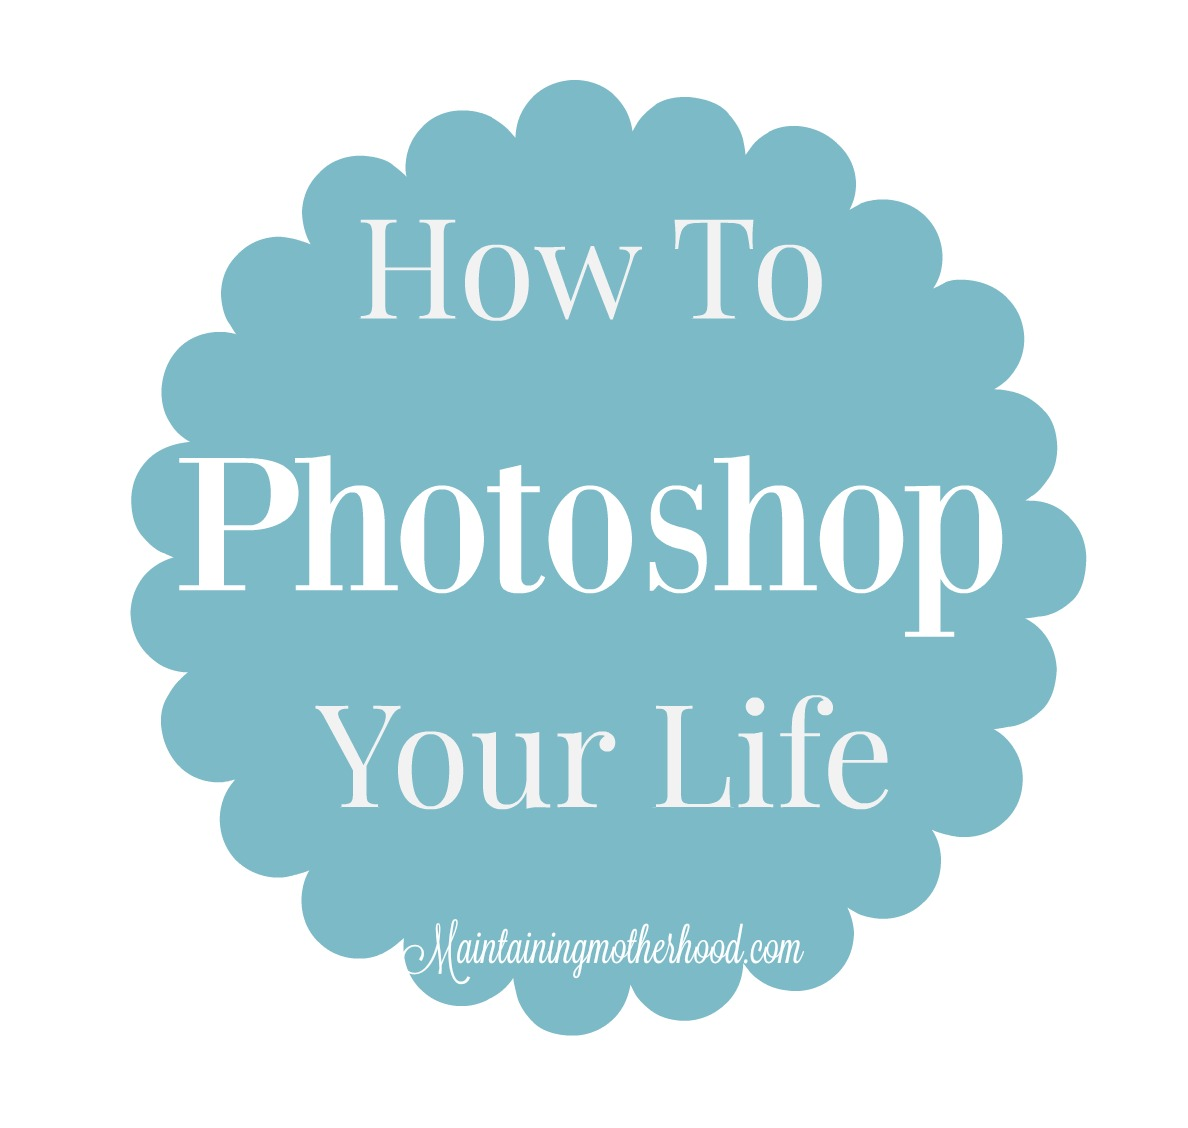 How to photoshop your life